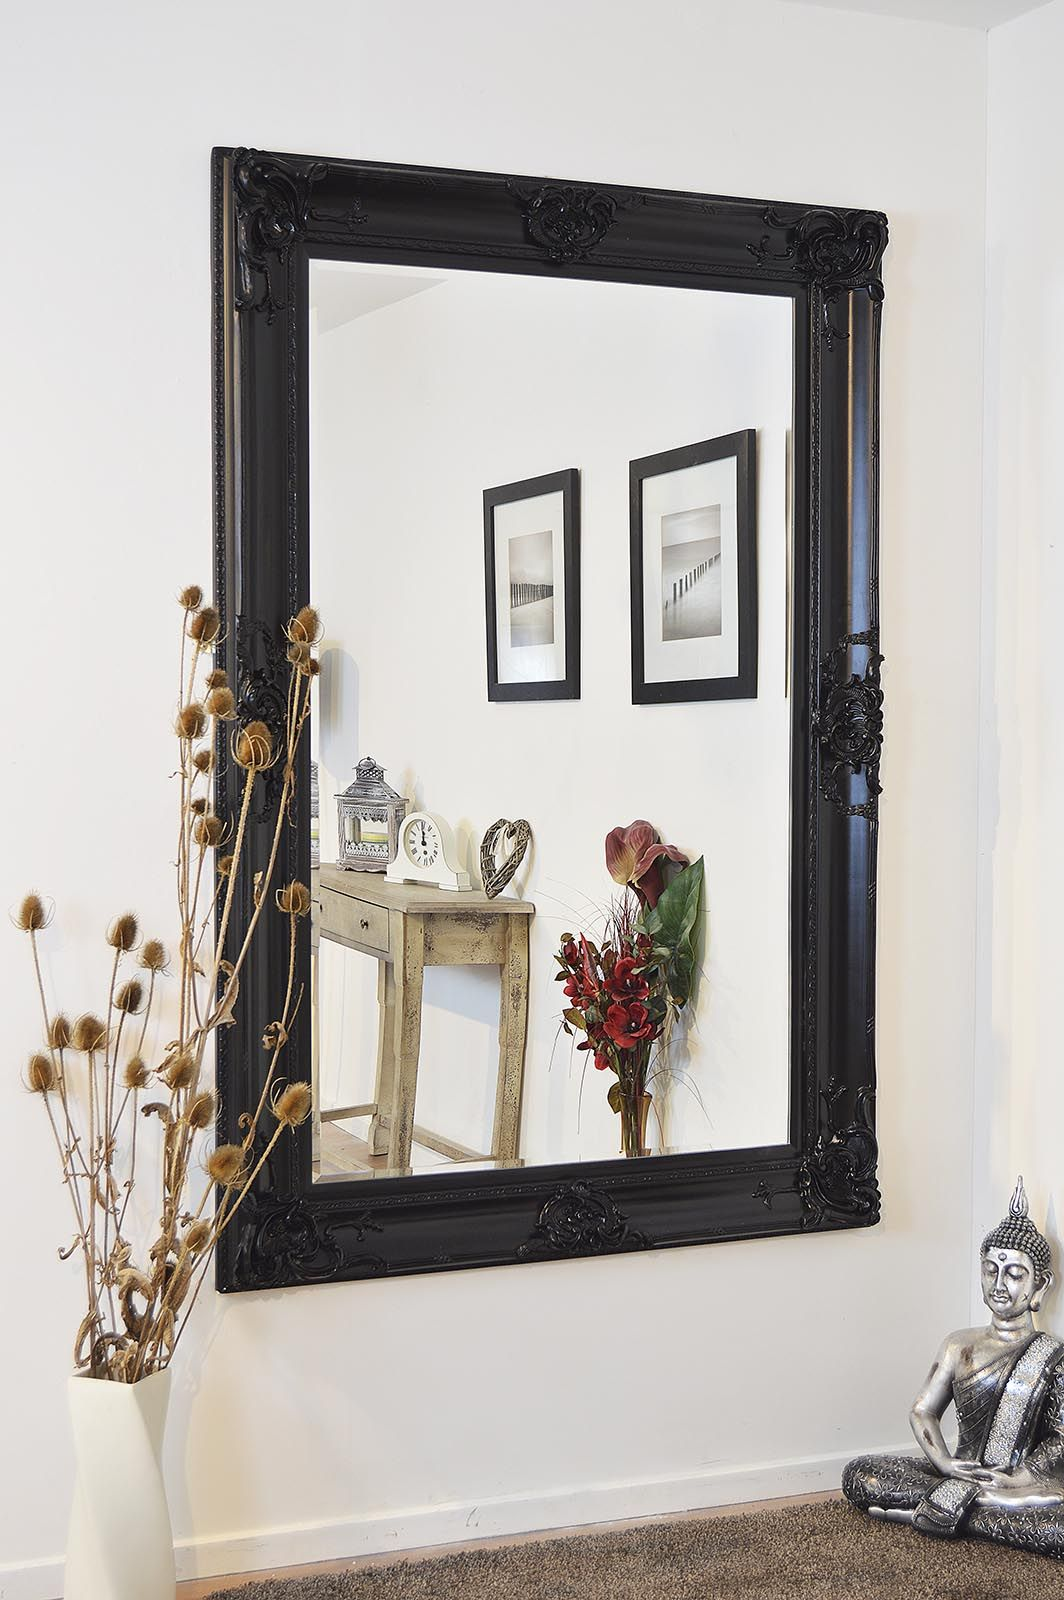 Honiton Black Framed Mirror 183x122cm | Beautiful Low Price Black ...